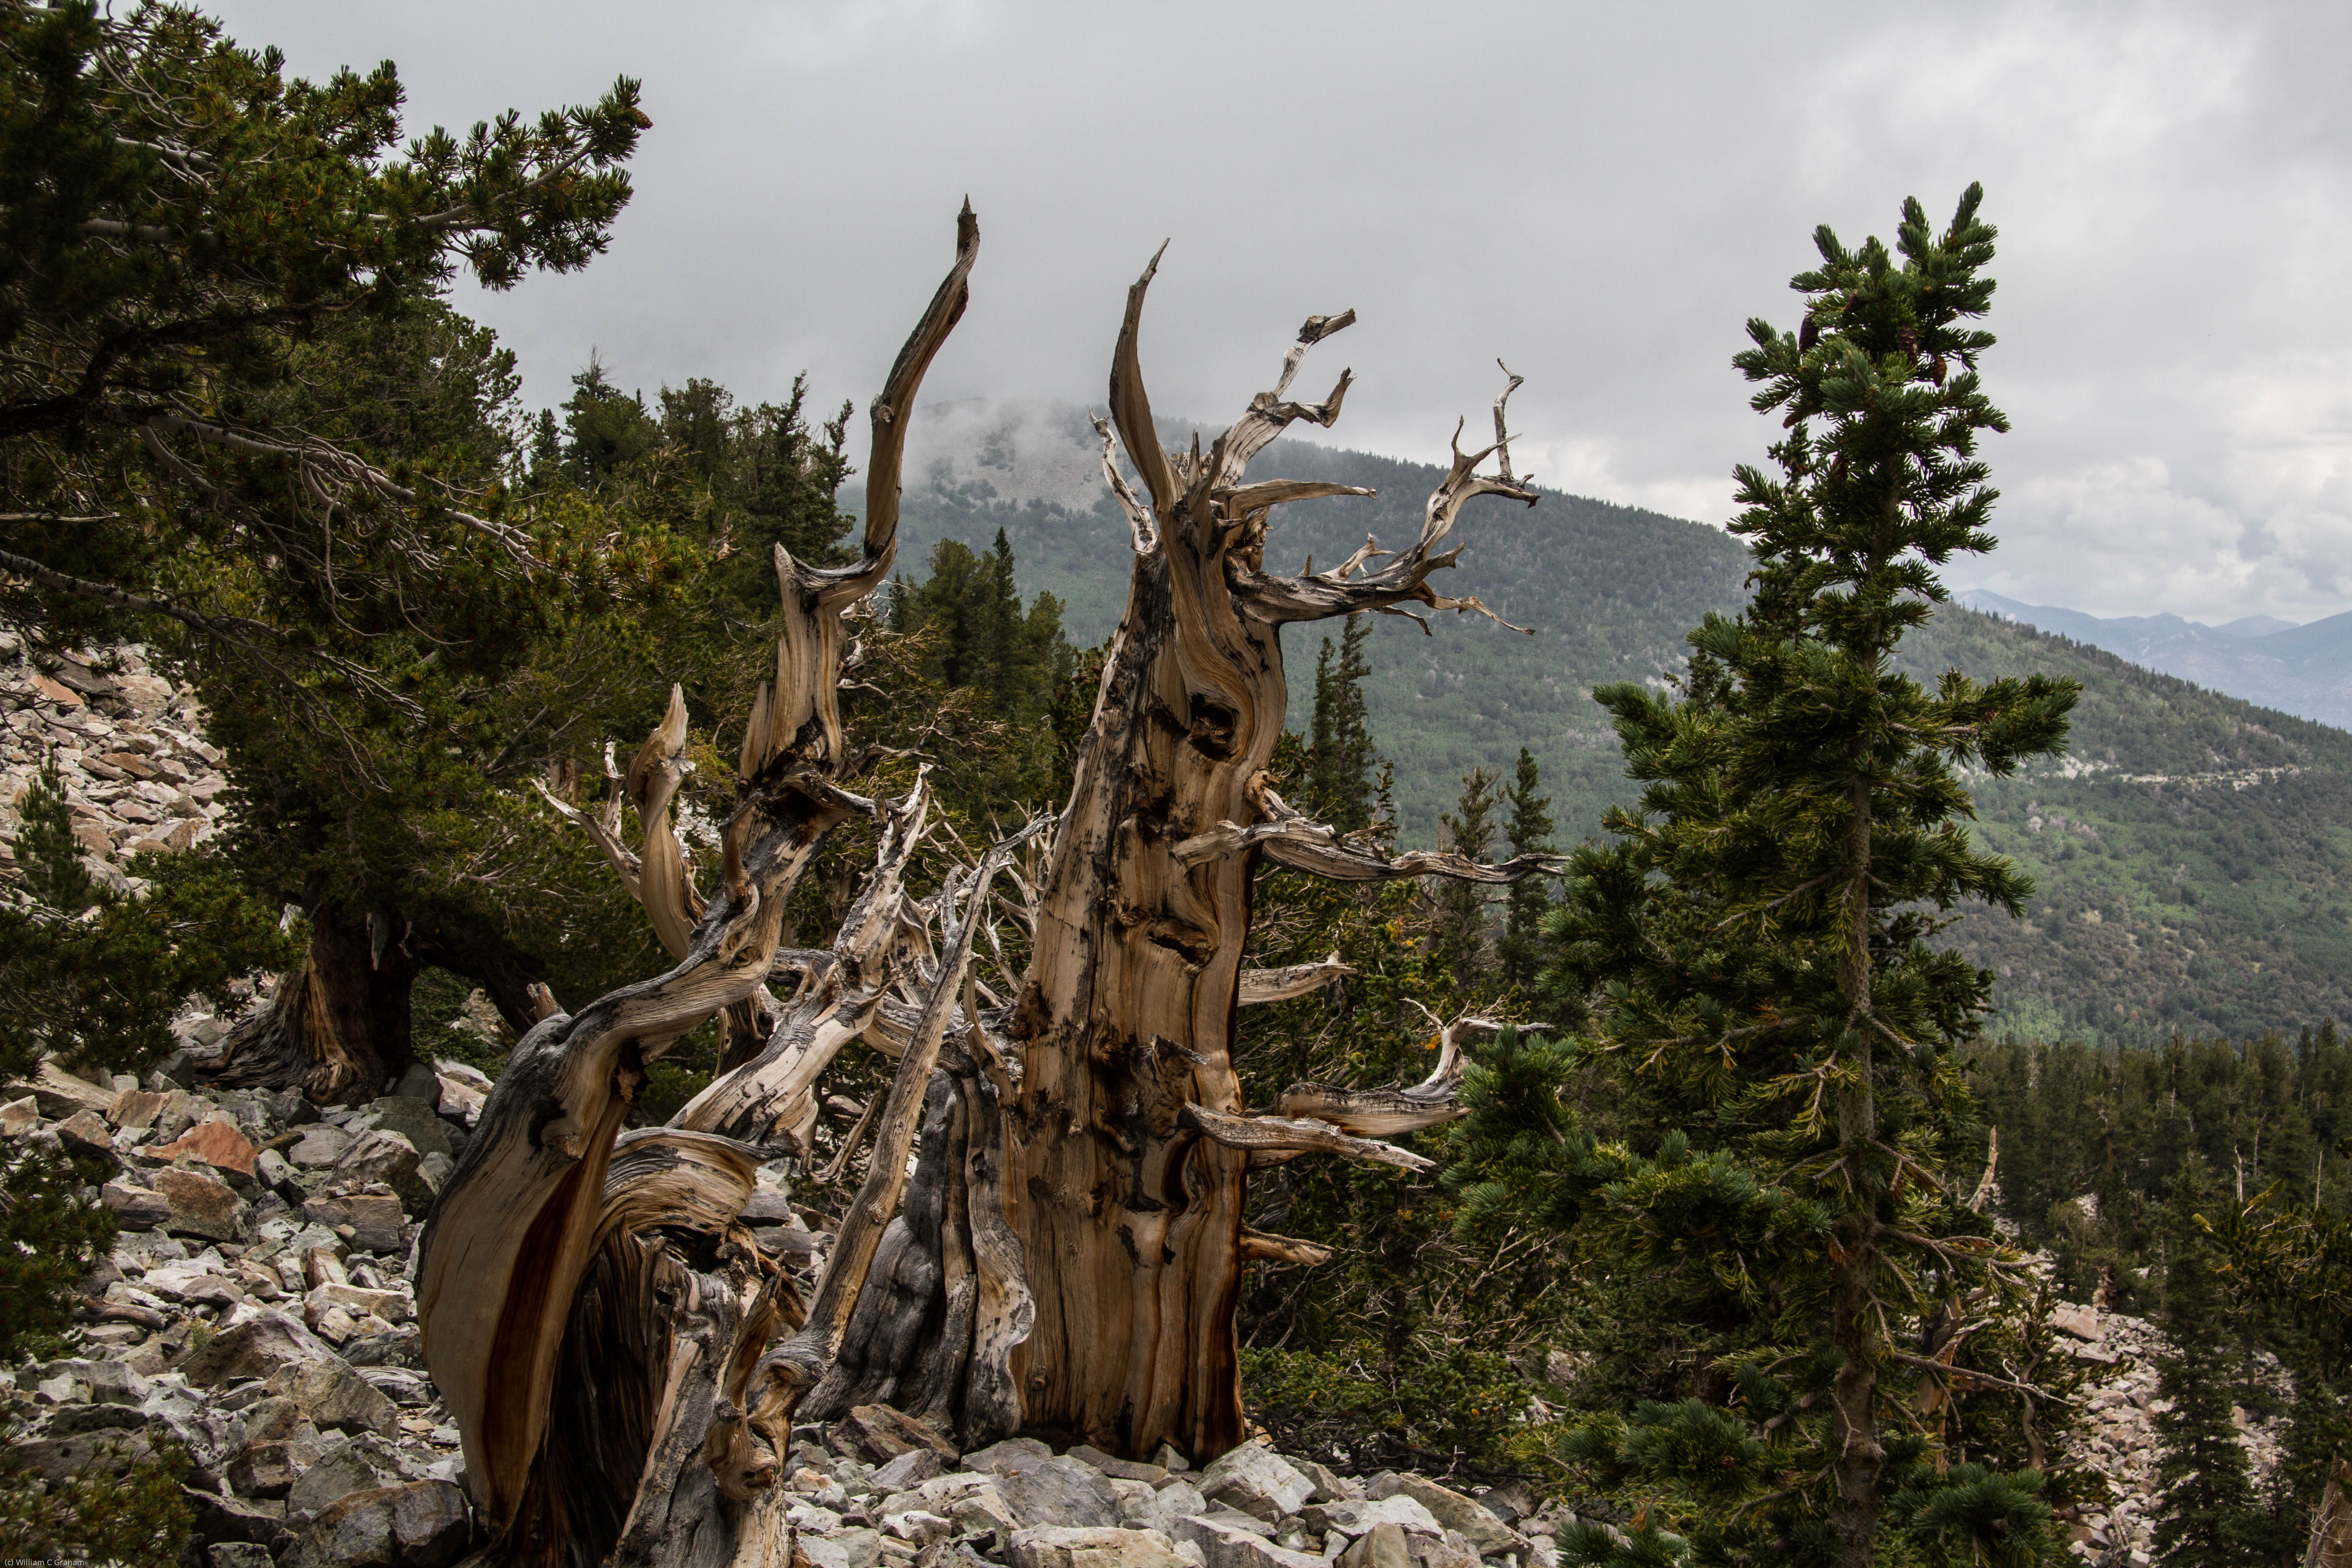 The Independent Life Of Bristlecone Pine Forests